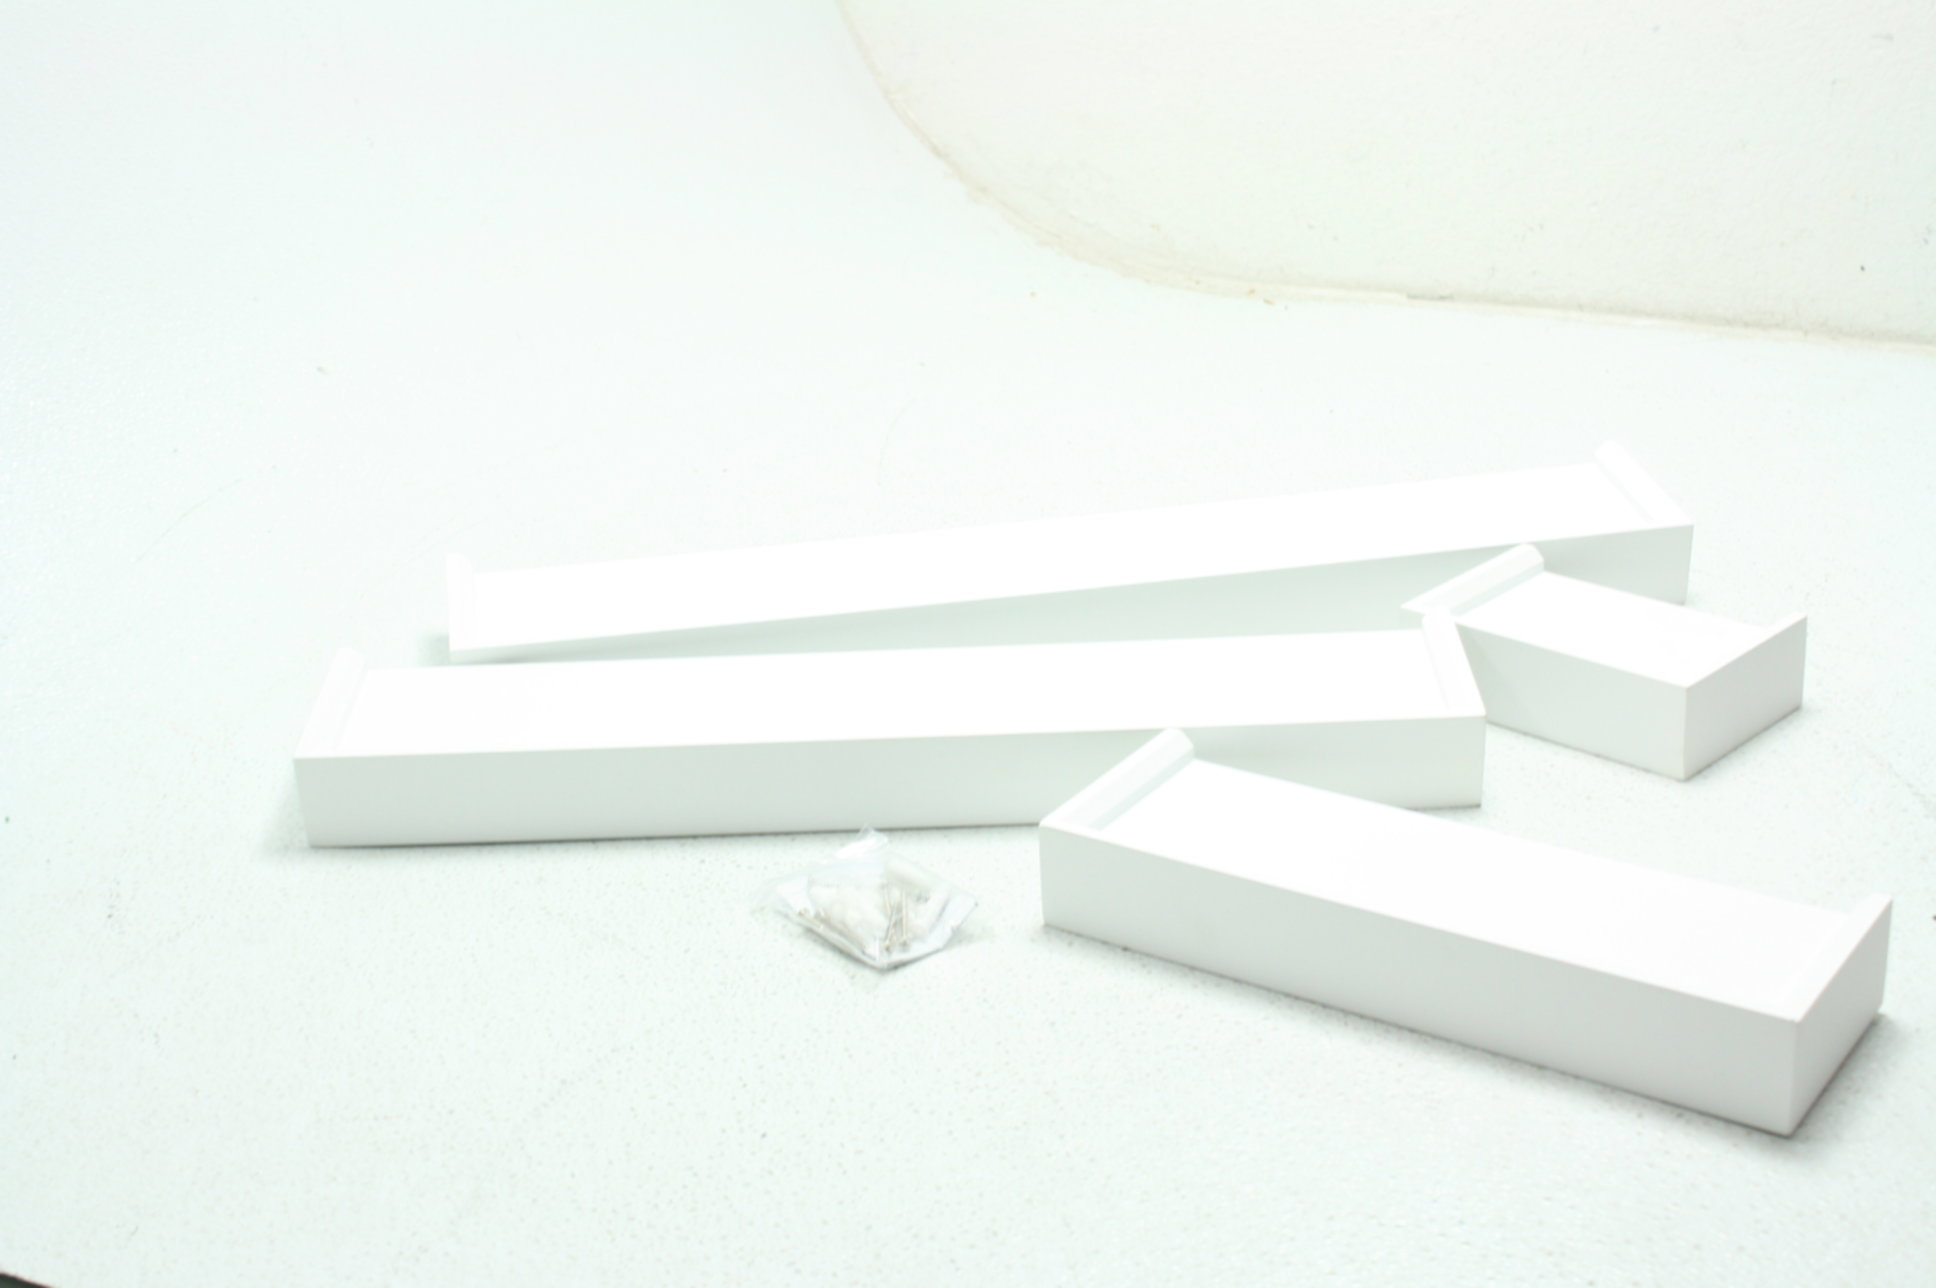 2541ab0506 Details about Ballucci Modern Ledge Wall Shelves Set Of 4 Easy To Hang  Durable MDF White